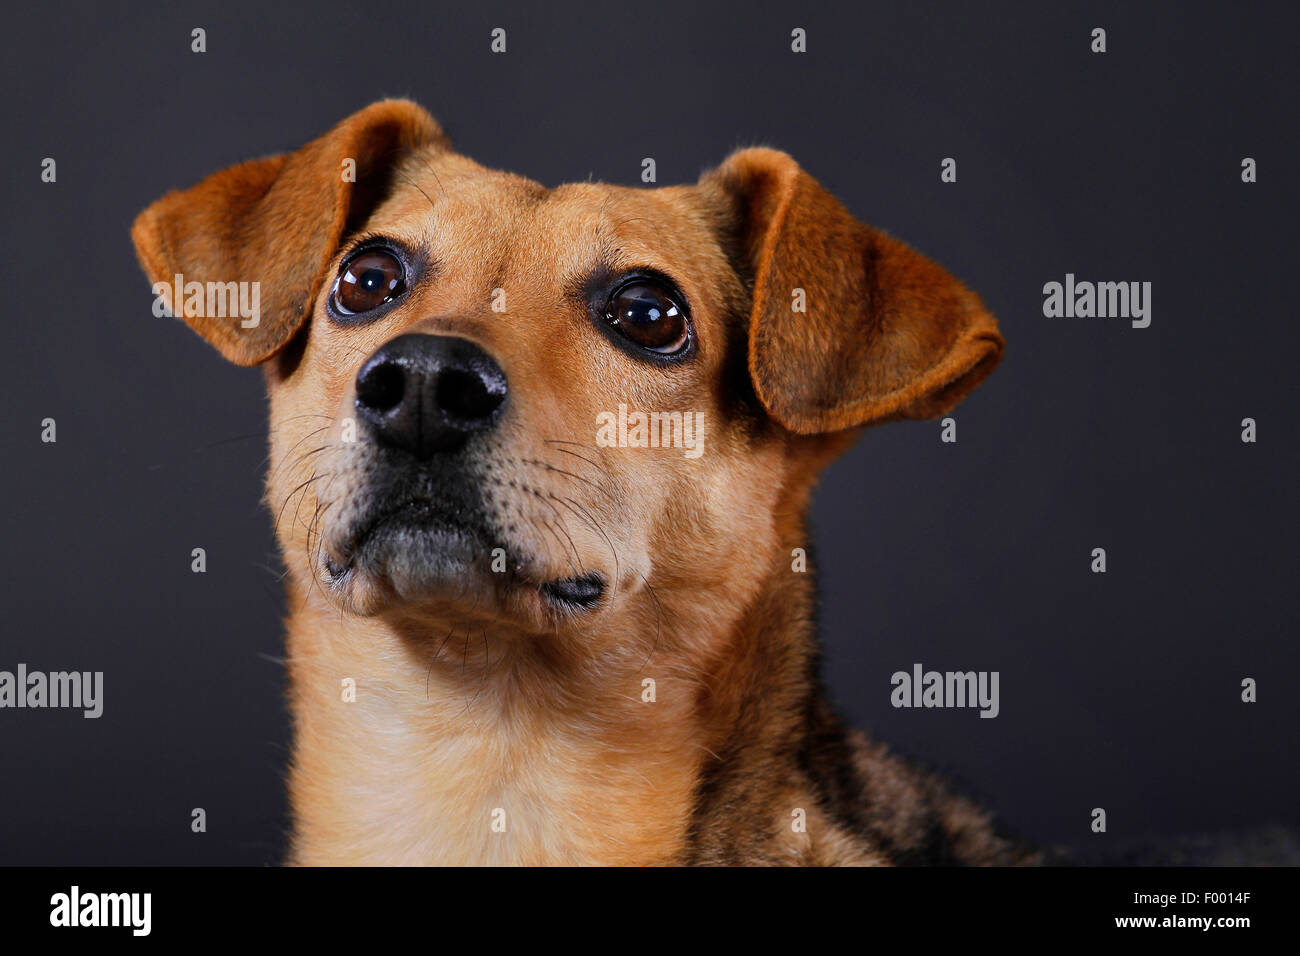 domestic dog (Canis lupus f. familiaris), portrait in front of black background - Stock Image